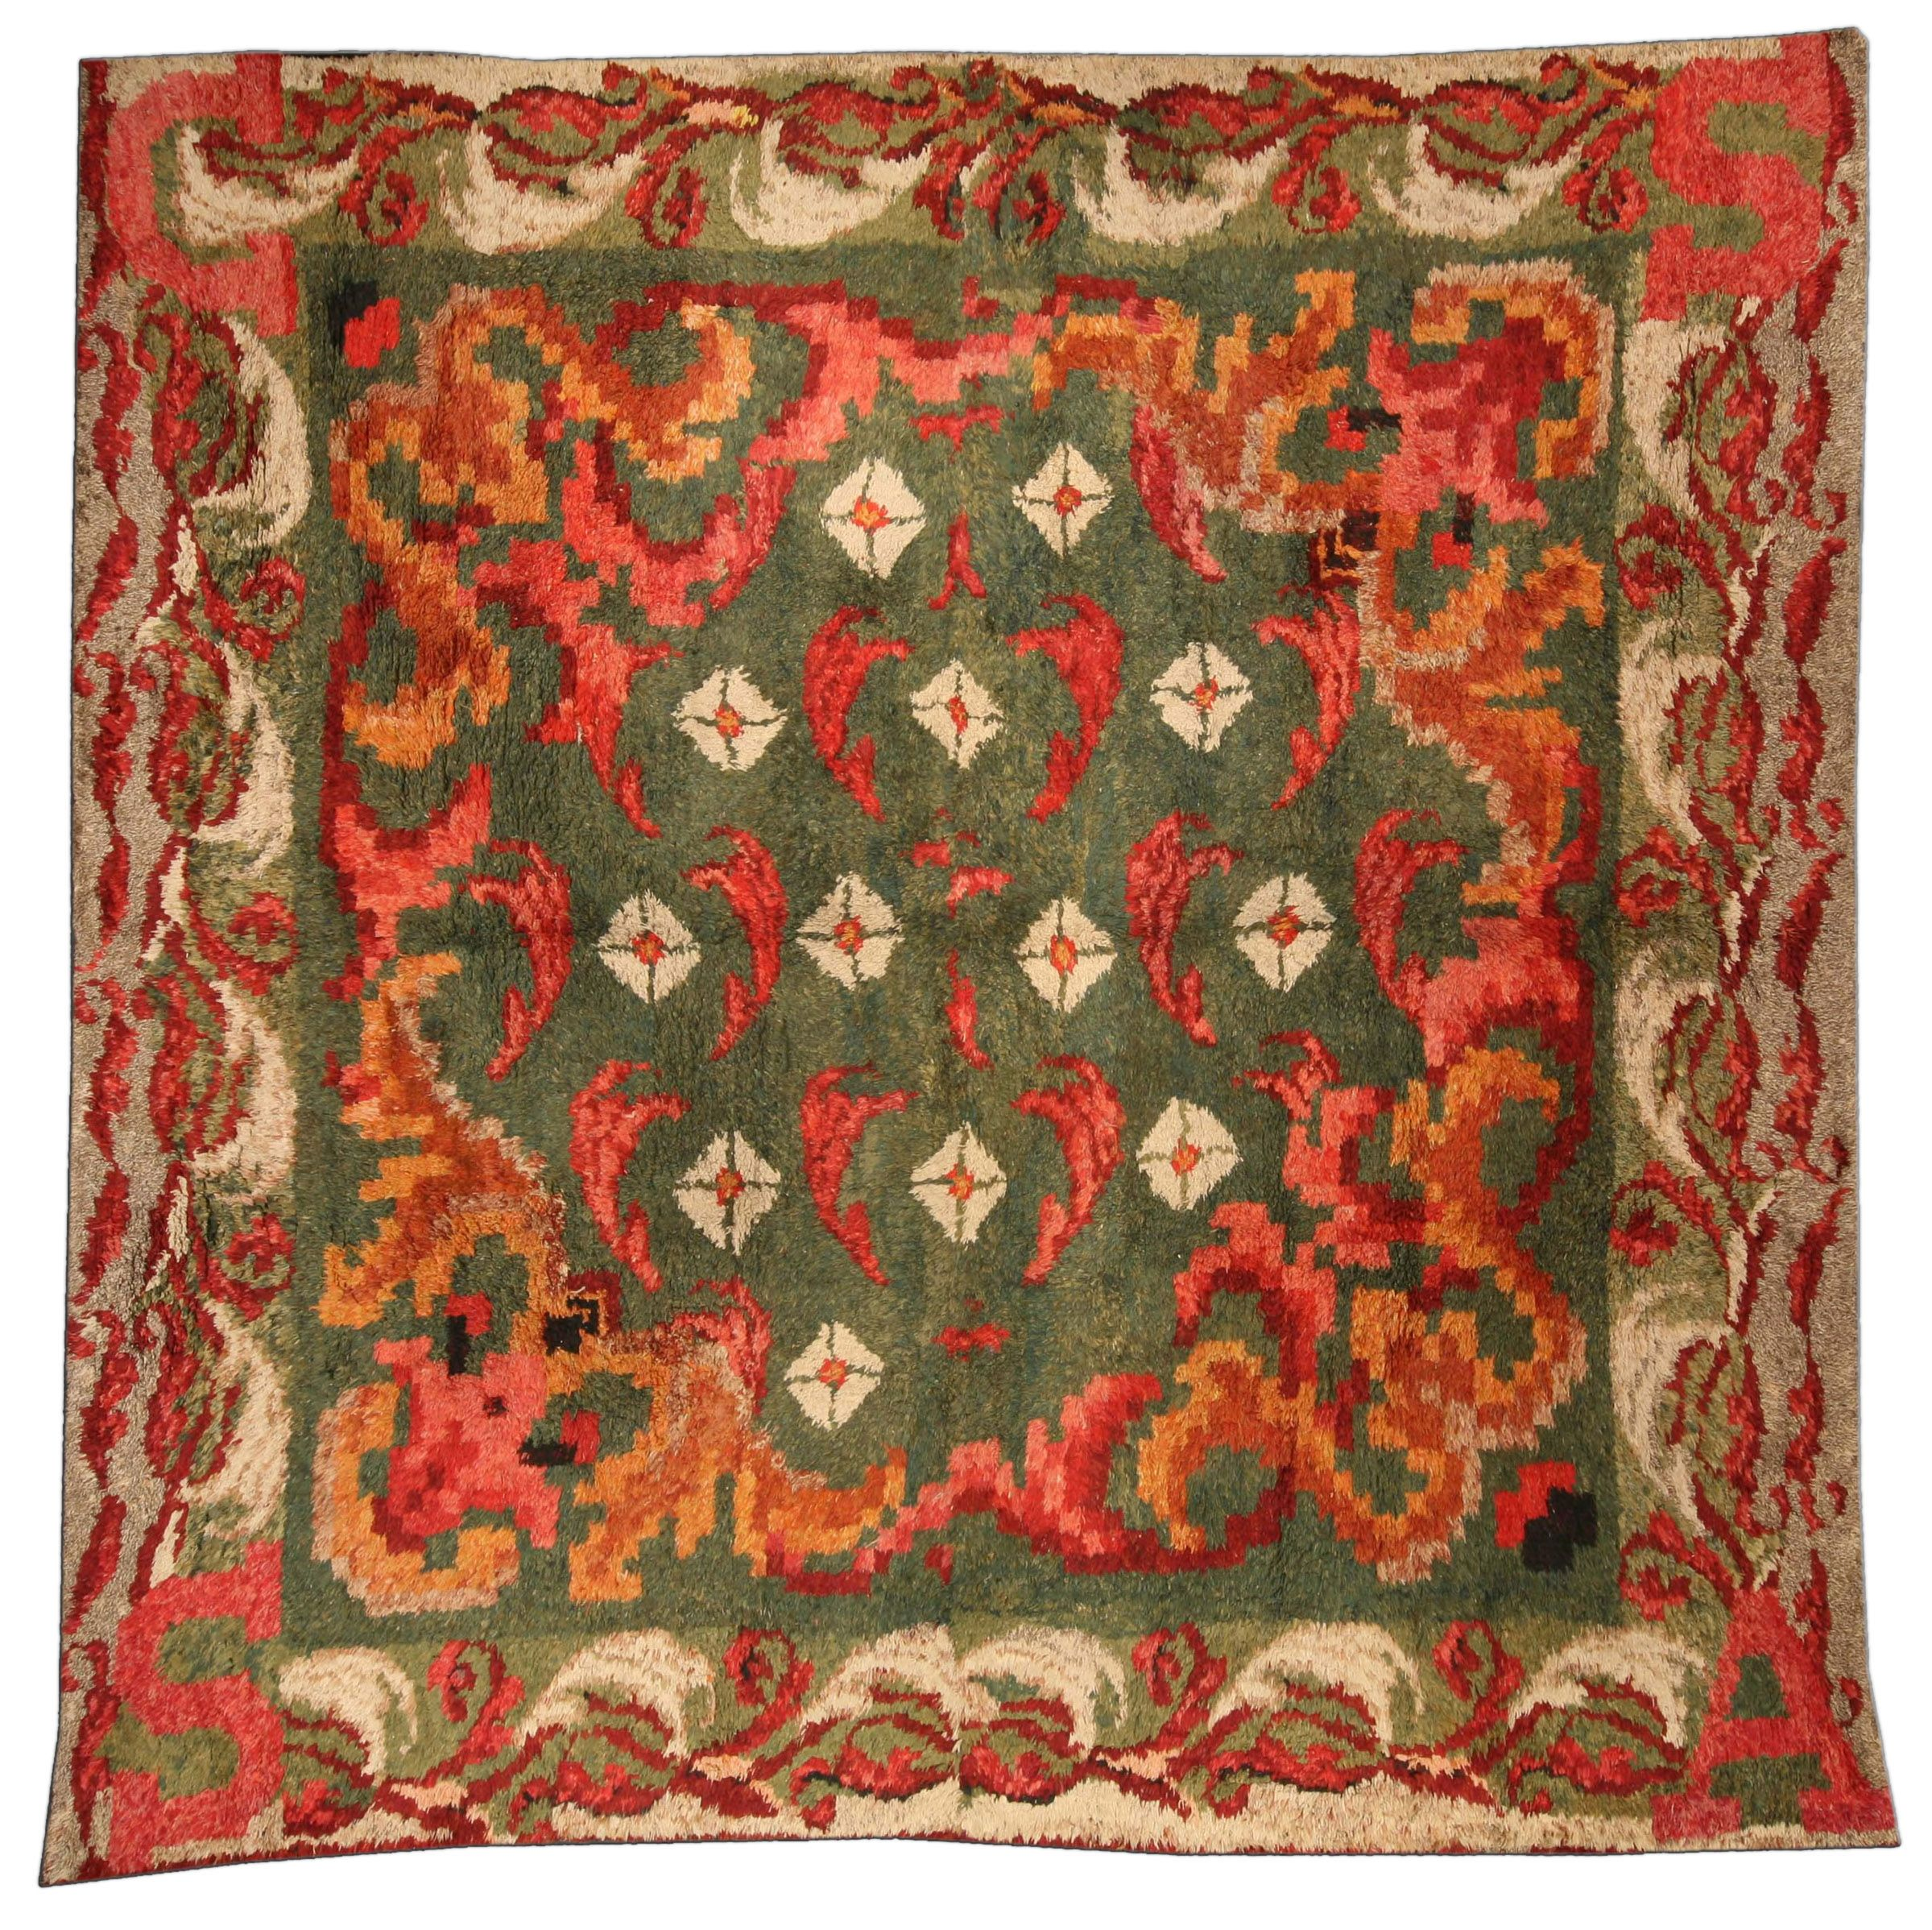 European Rugs Antique Carpets For Sale Lowest Price Nyc French Antiques Rag Rug Rugs